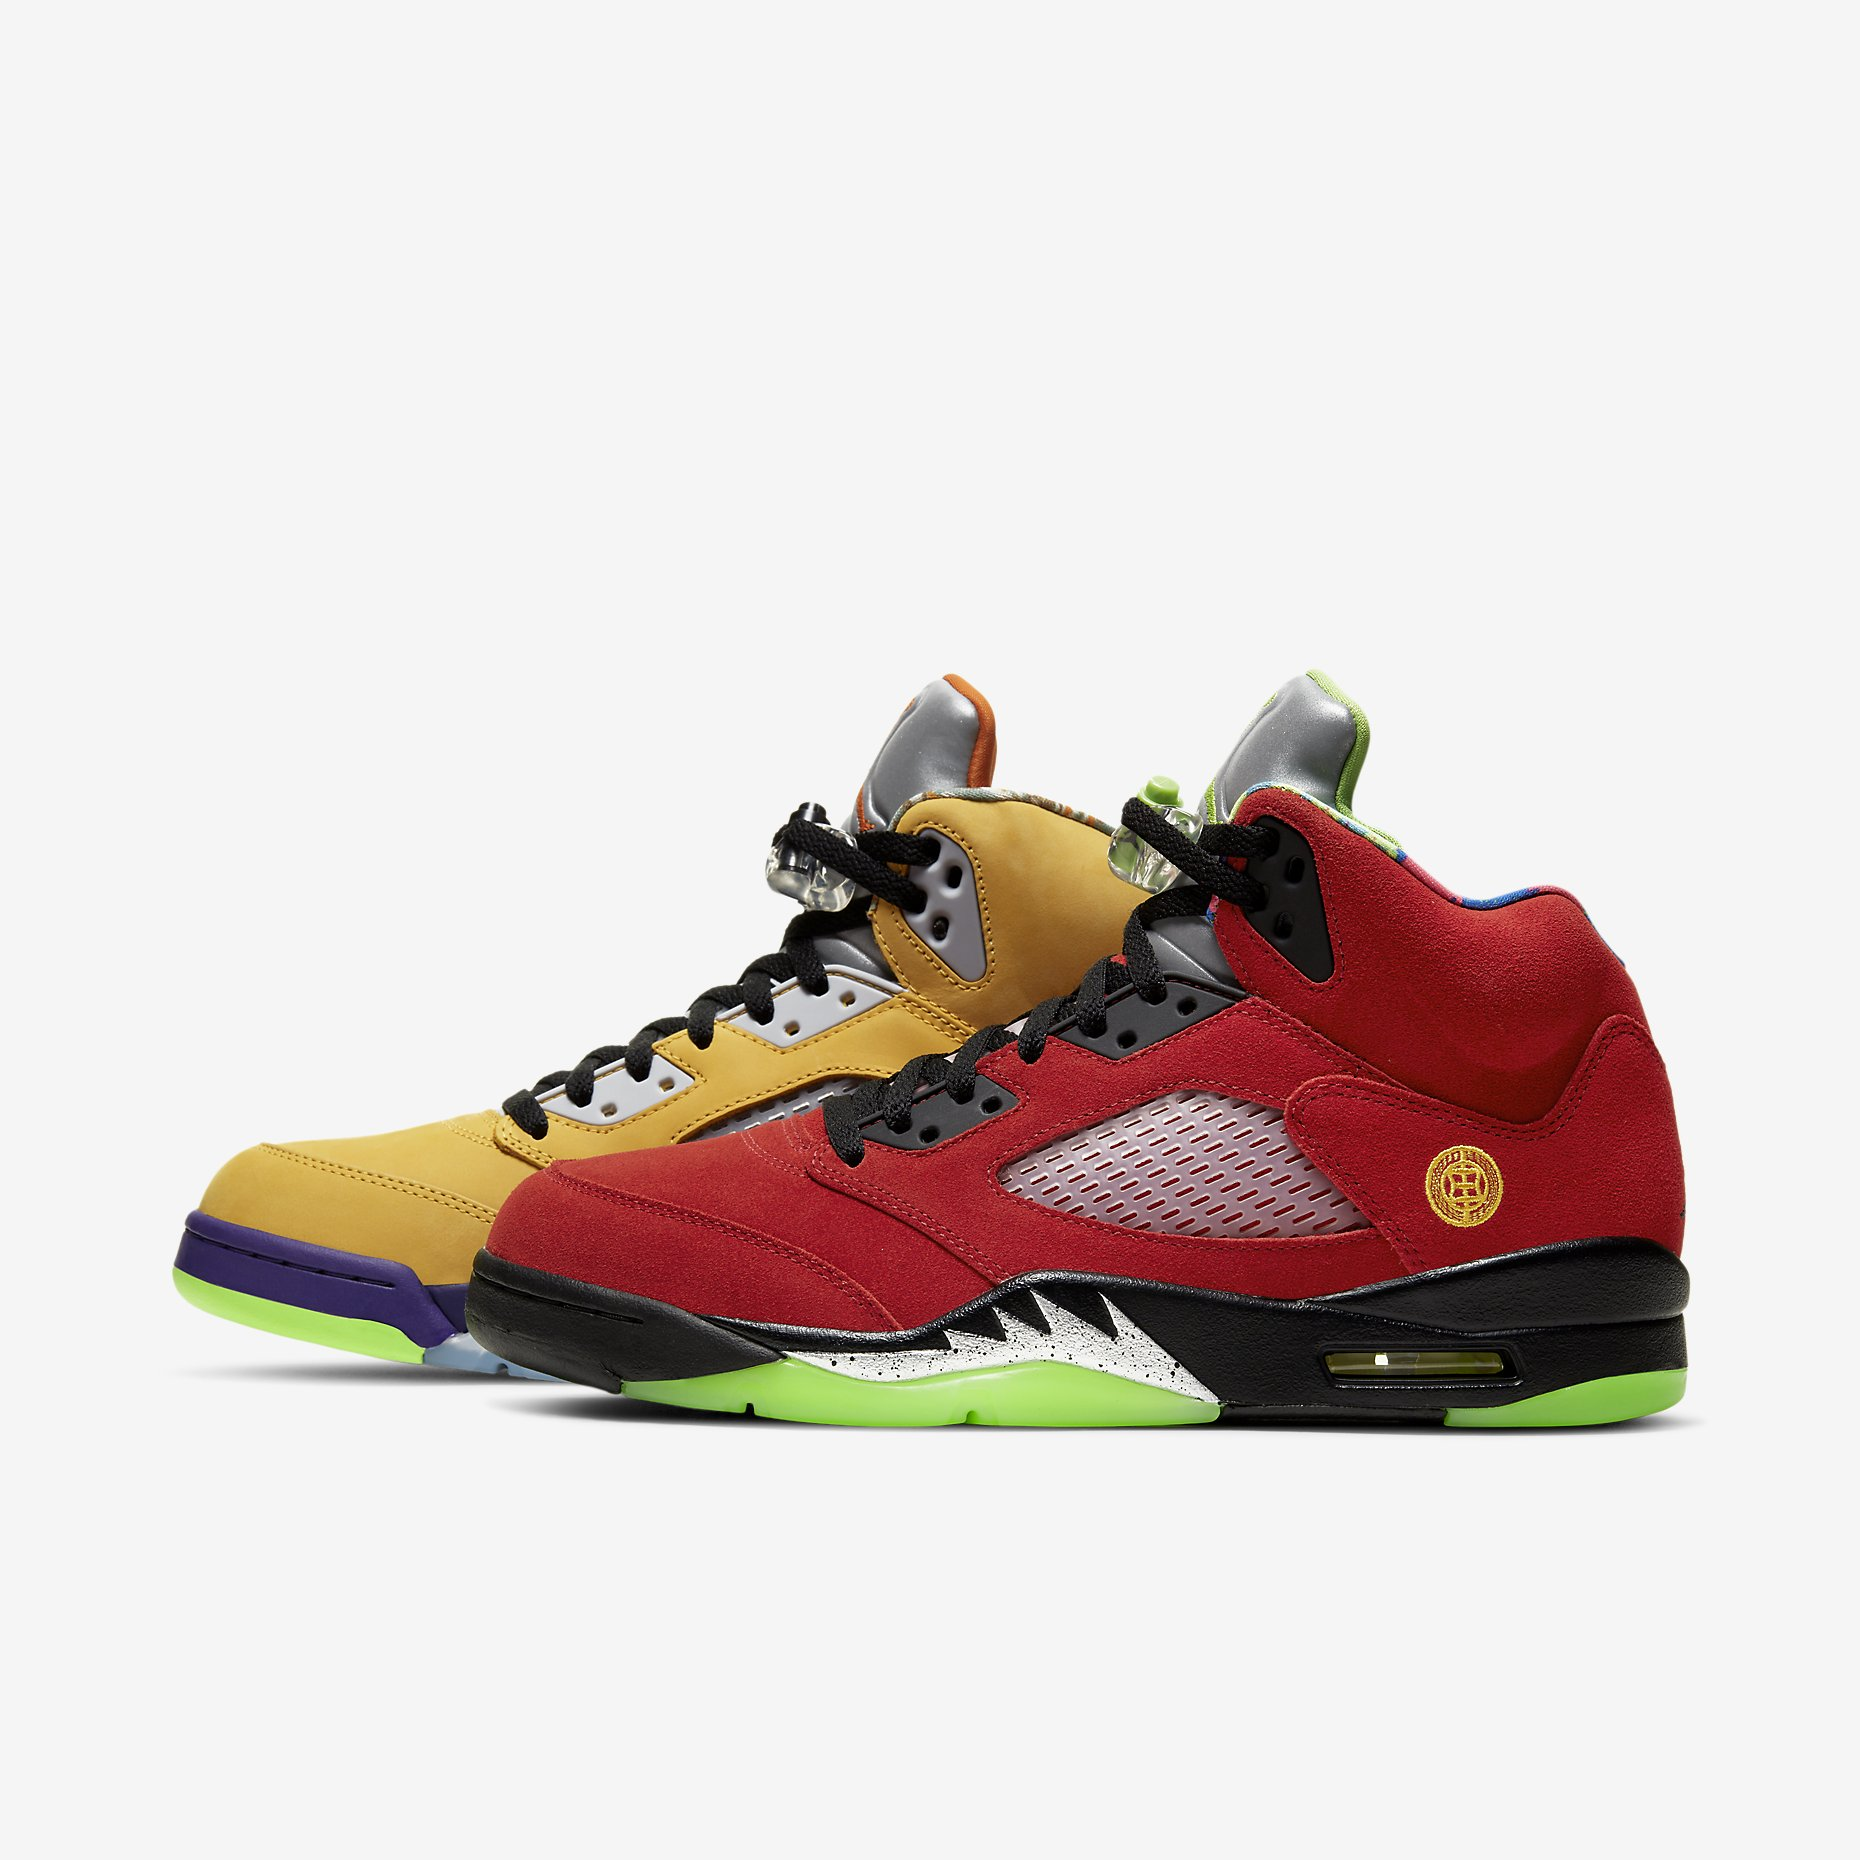 Air Jordan 5 Retro SE 'What The'}